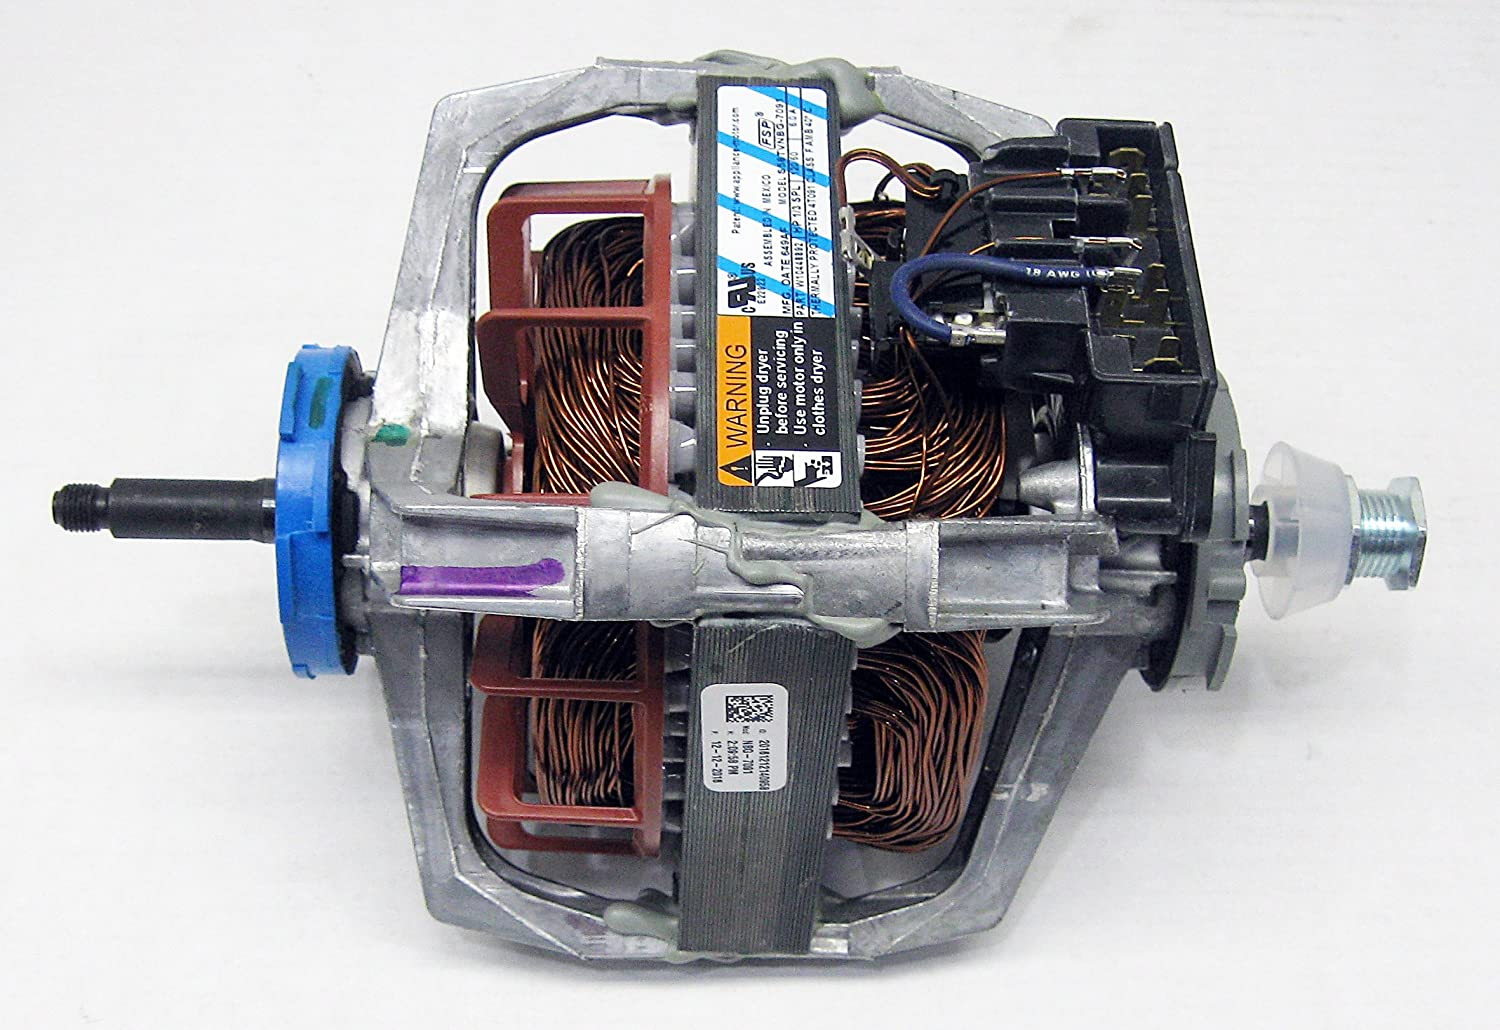 dryer motor wiring diagram dryer image wiring diagram amazon com new replacement part dryer drive motor for whirlpool on dryer motor wiring diagram